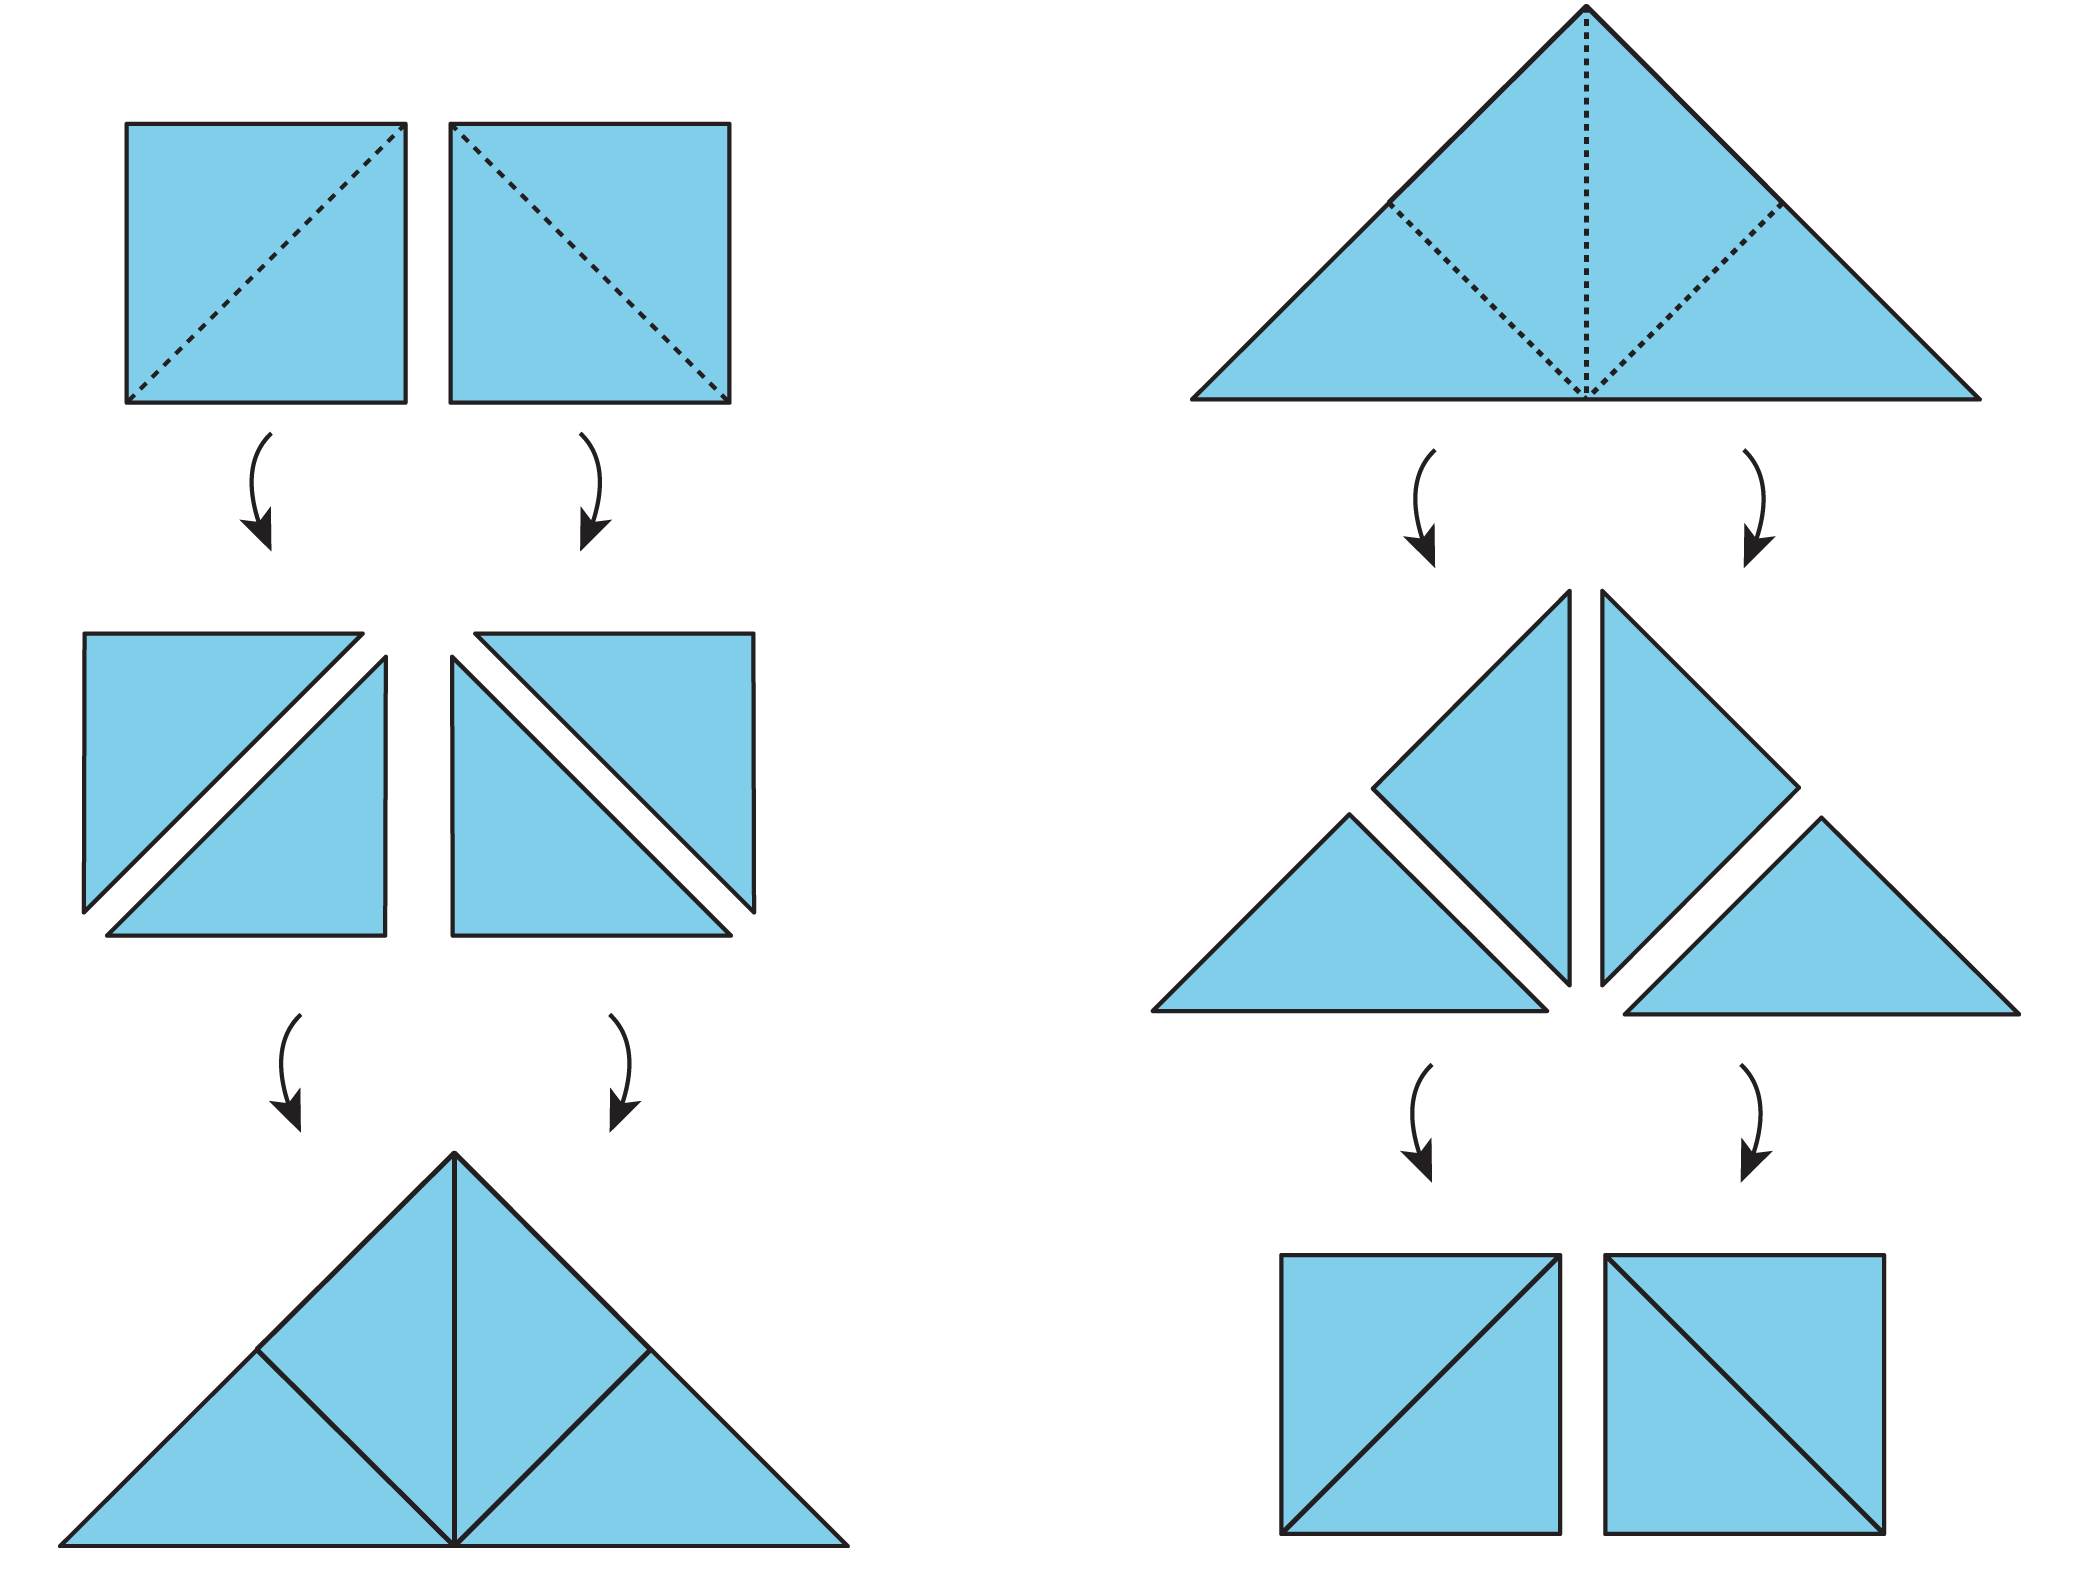 An image of two squares, which are then decomposed into four triangles, which are then rearranged into one large triangle. Another image of a large triangle that is decomposed into four smaller triangles, and then rearranged into two squares.